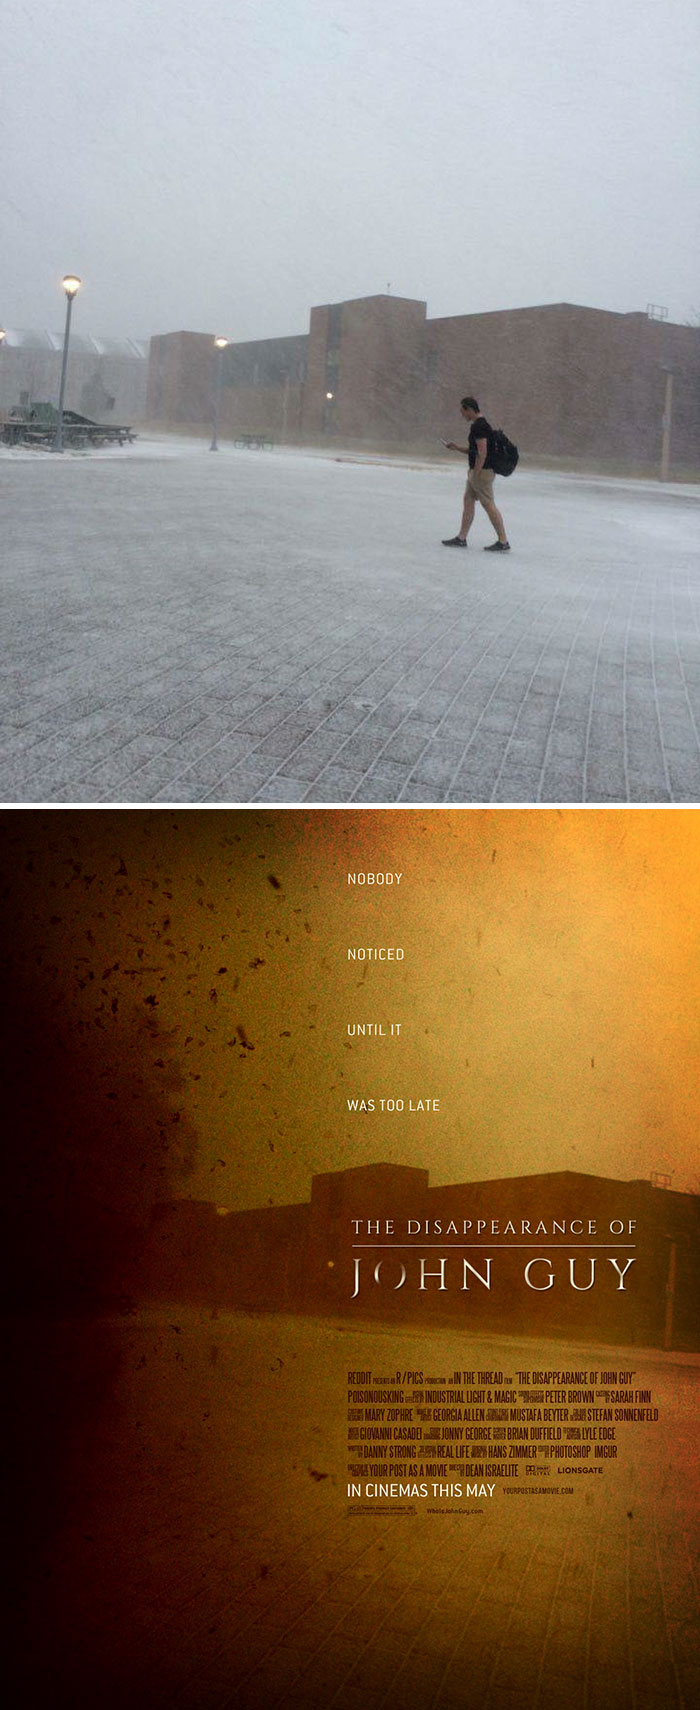 random-people-images-turned-into-movie-posters-your-post-as-a-movie-19-57bd81685a7da__700